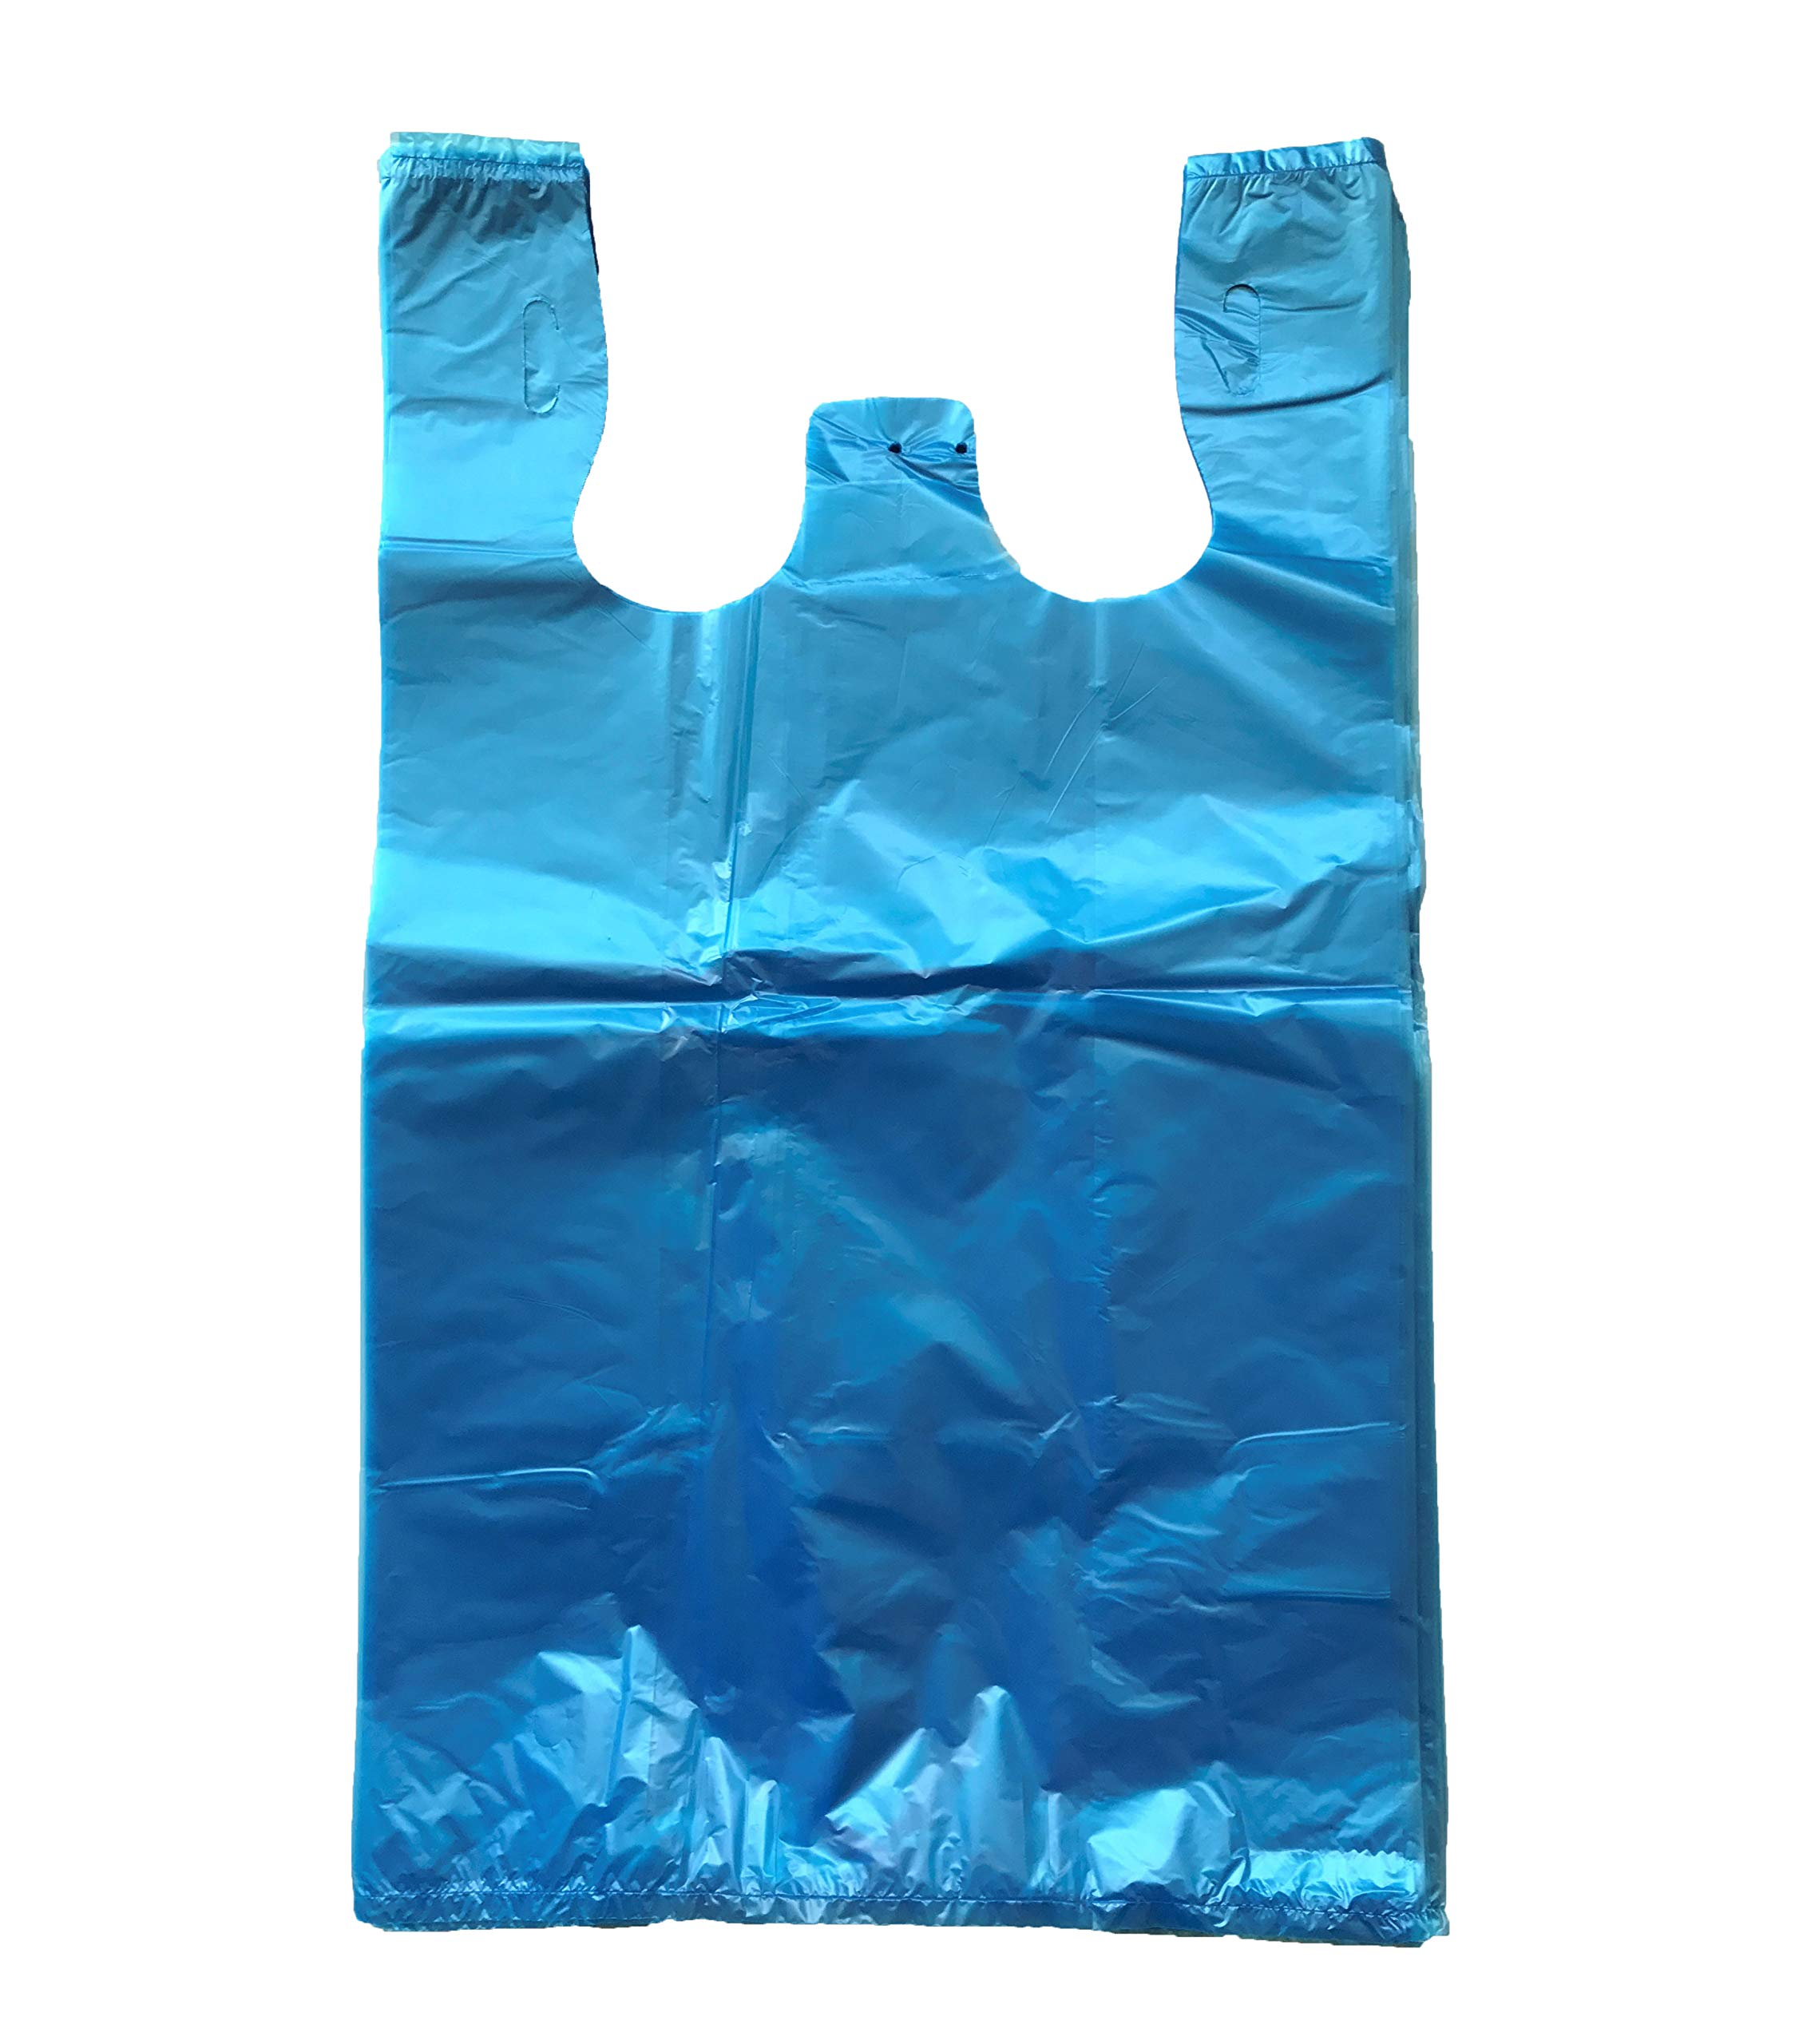 RG Large Plastic Grocery T-shirts Carry-out Bag Blue Unprinted 12 X 6 X 21 (1000)